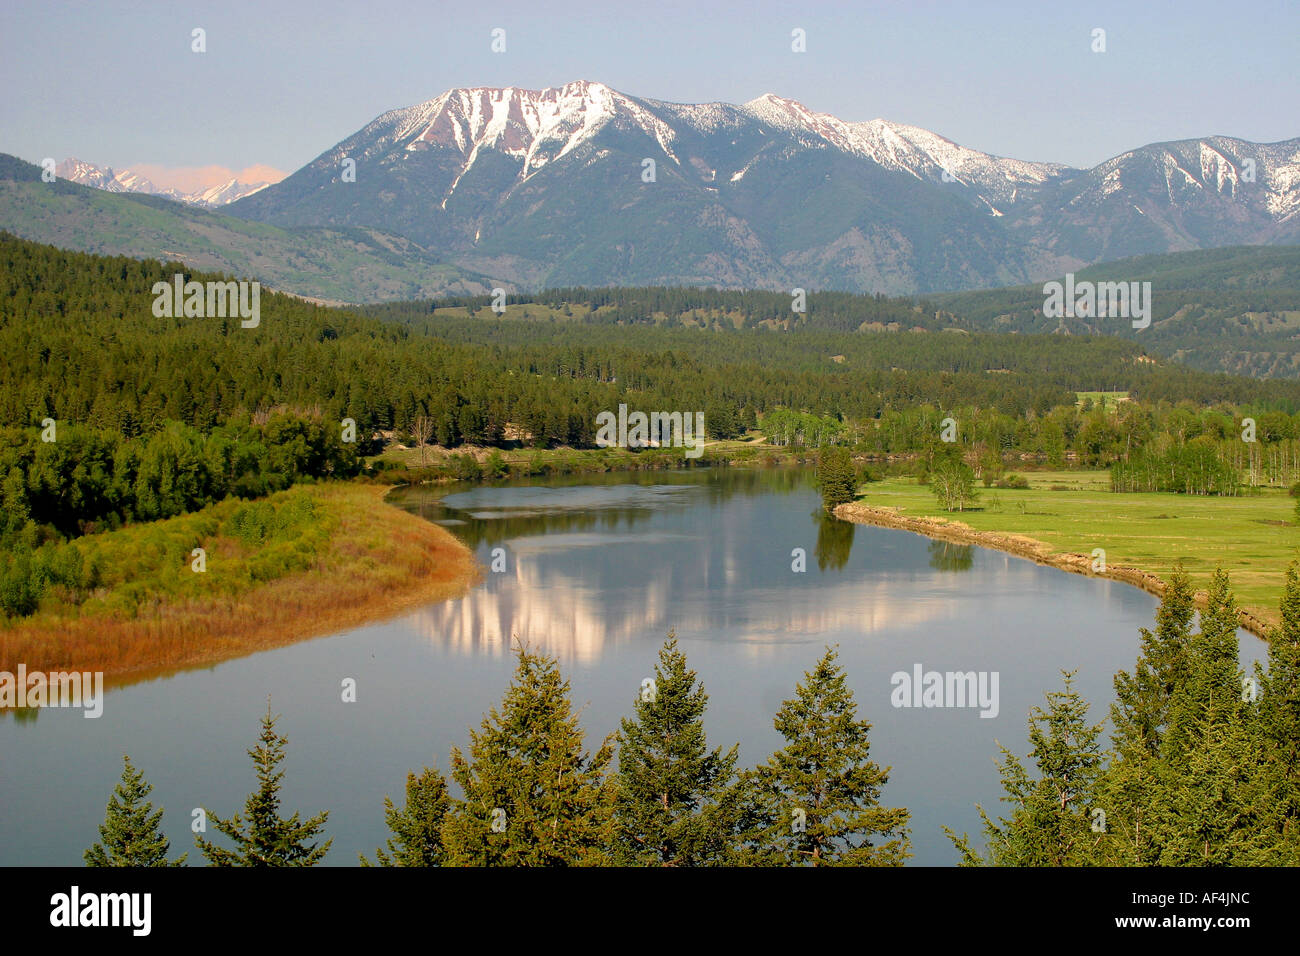 LANDSCAPE ;Snow coverd mountain reflected in a smwll pond - Stock Image